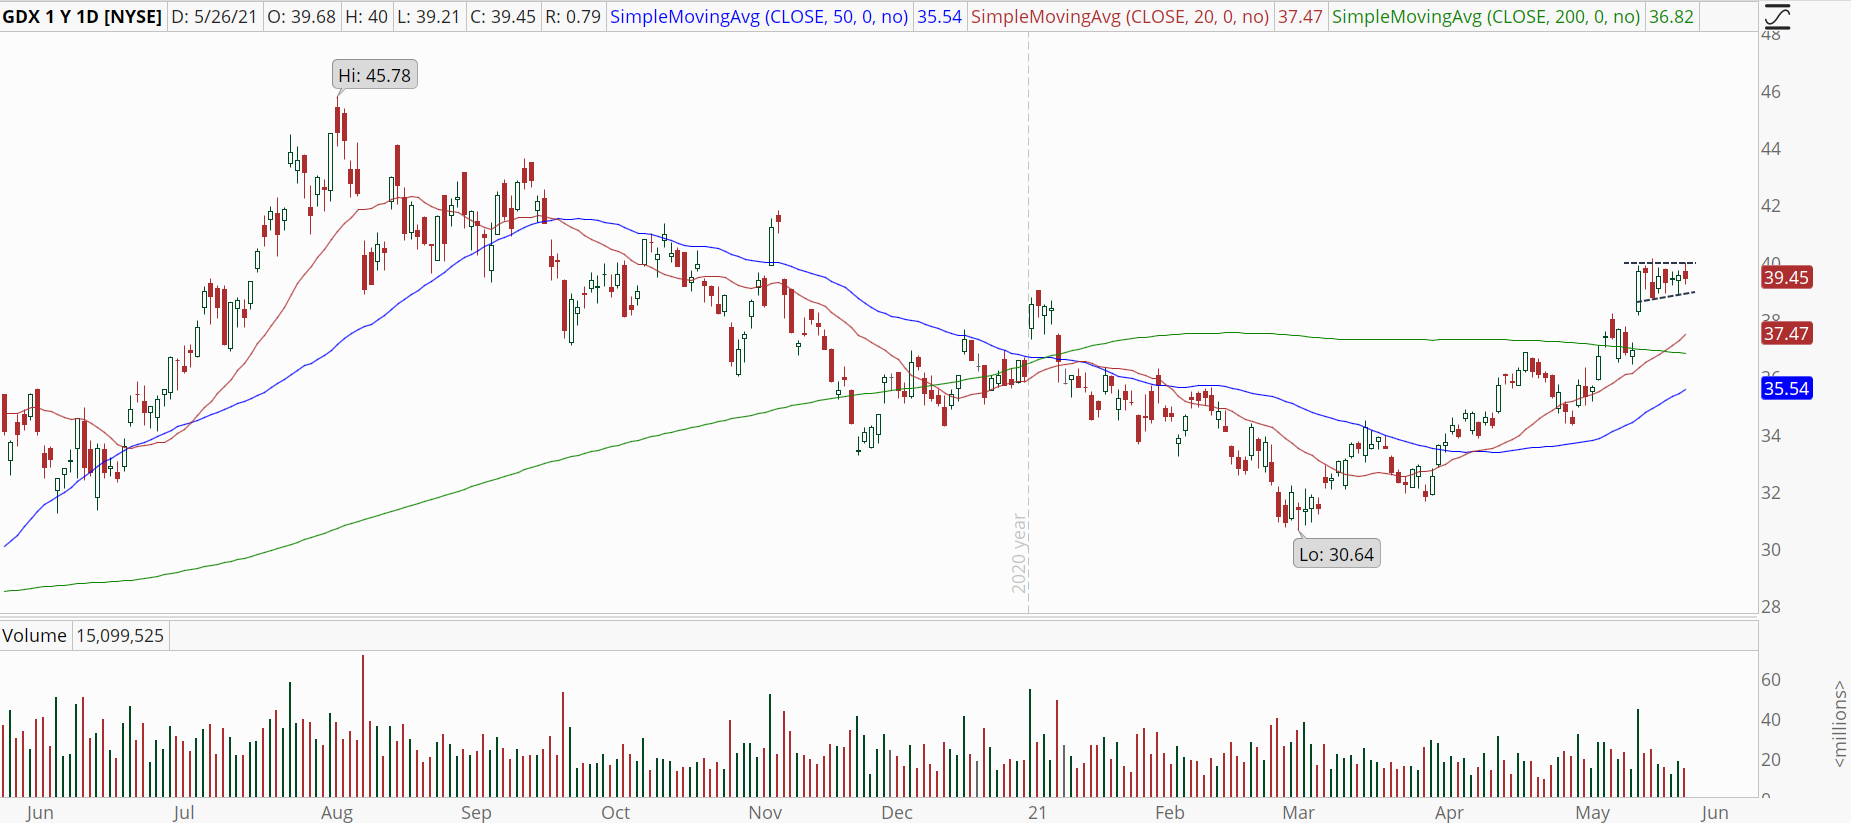 Gold Miners ETF (GDX) with robust uptrend.